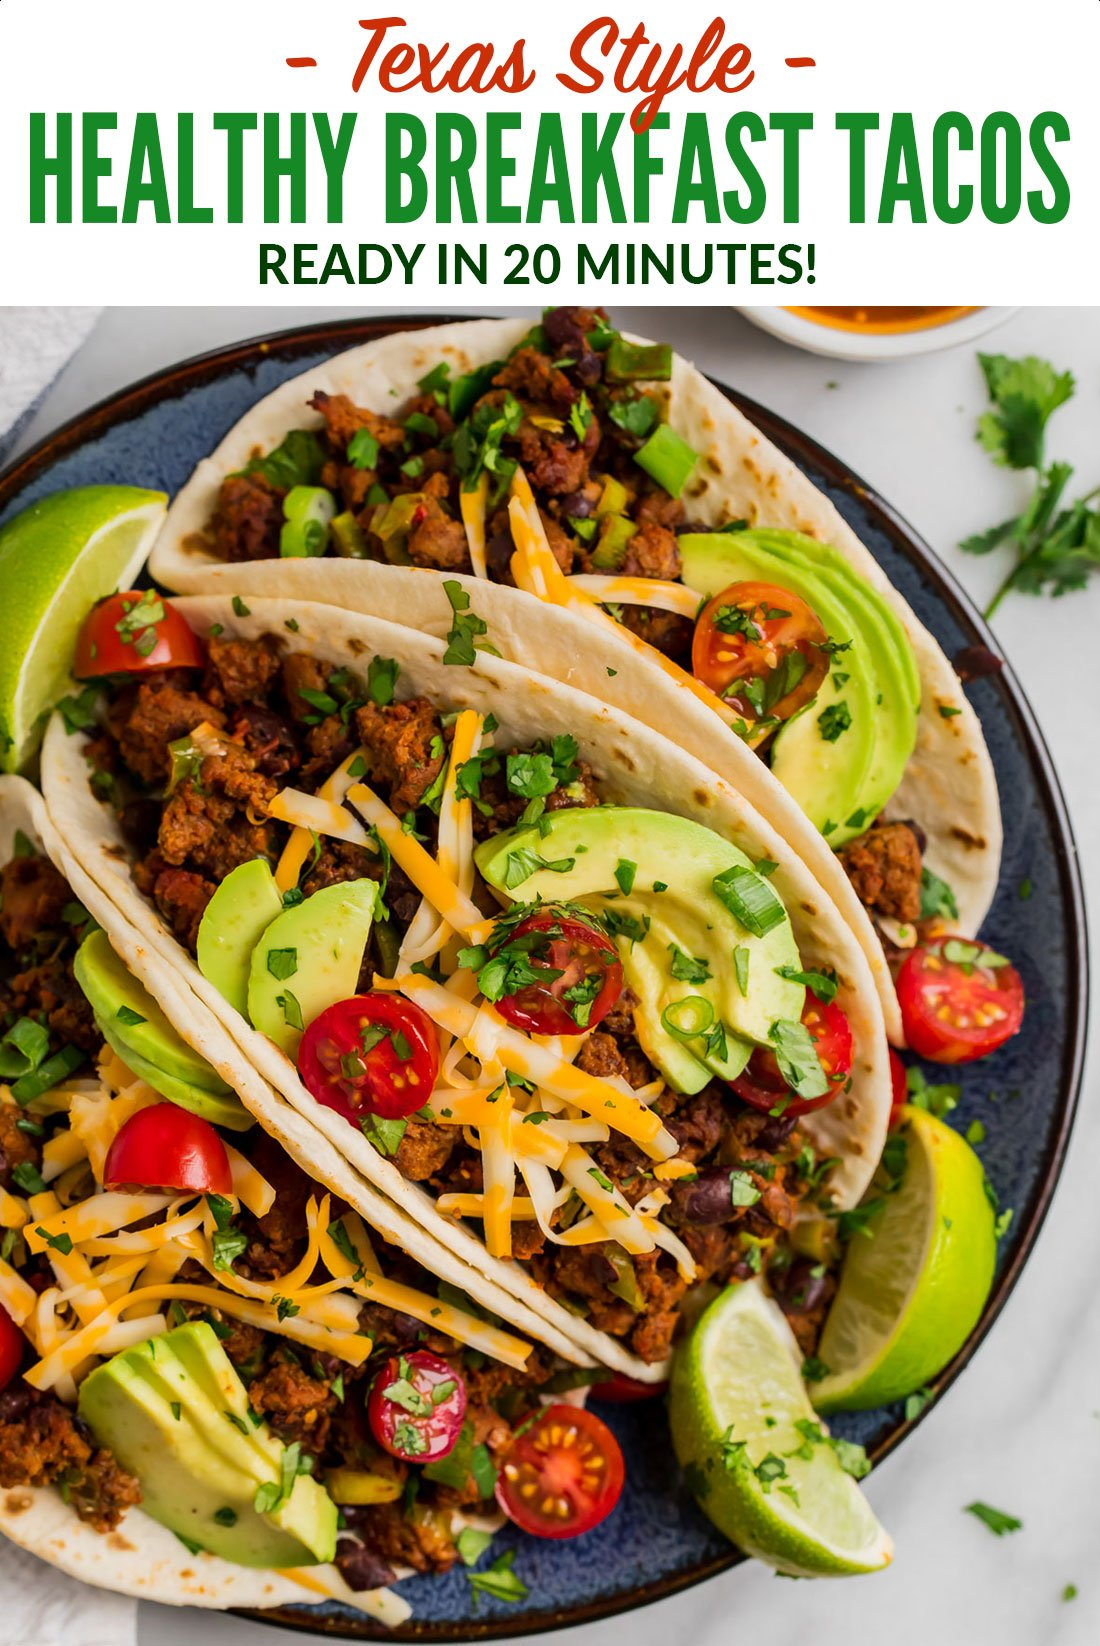 Breakfast Tacos Healthy Recipe Ready In 20 Minutes